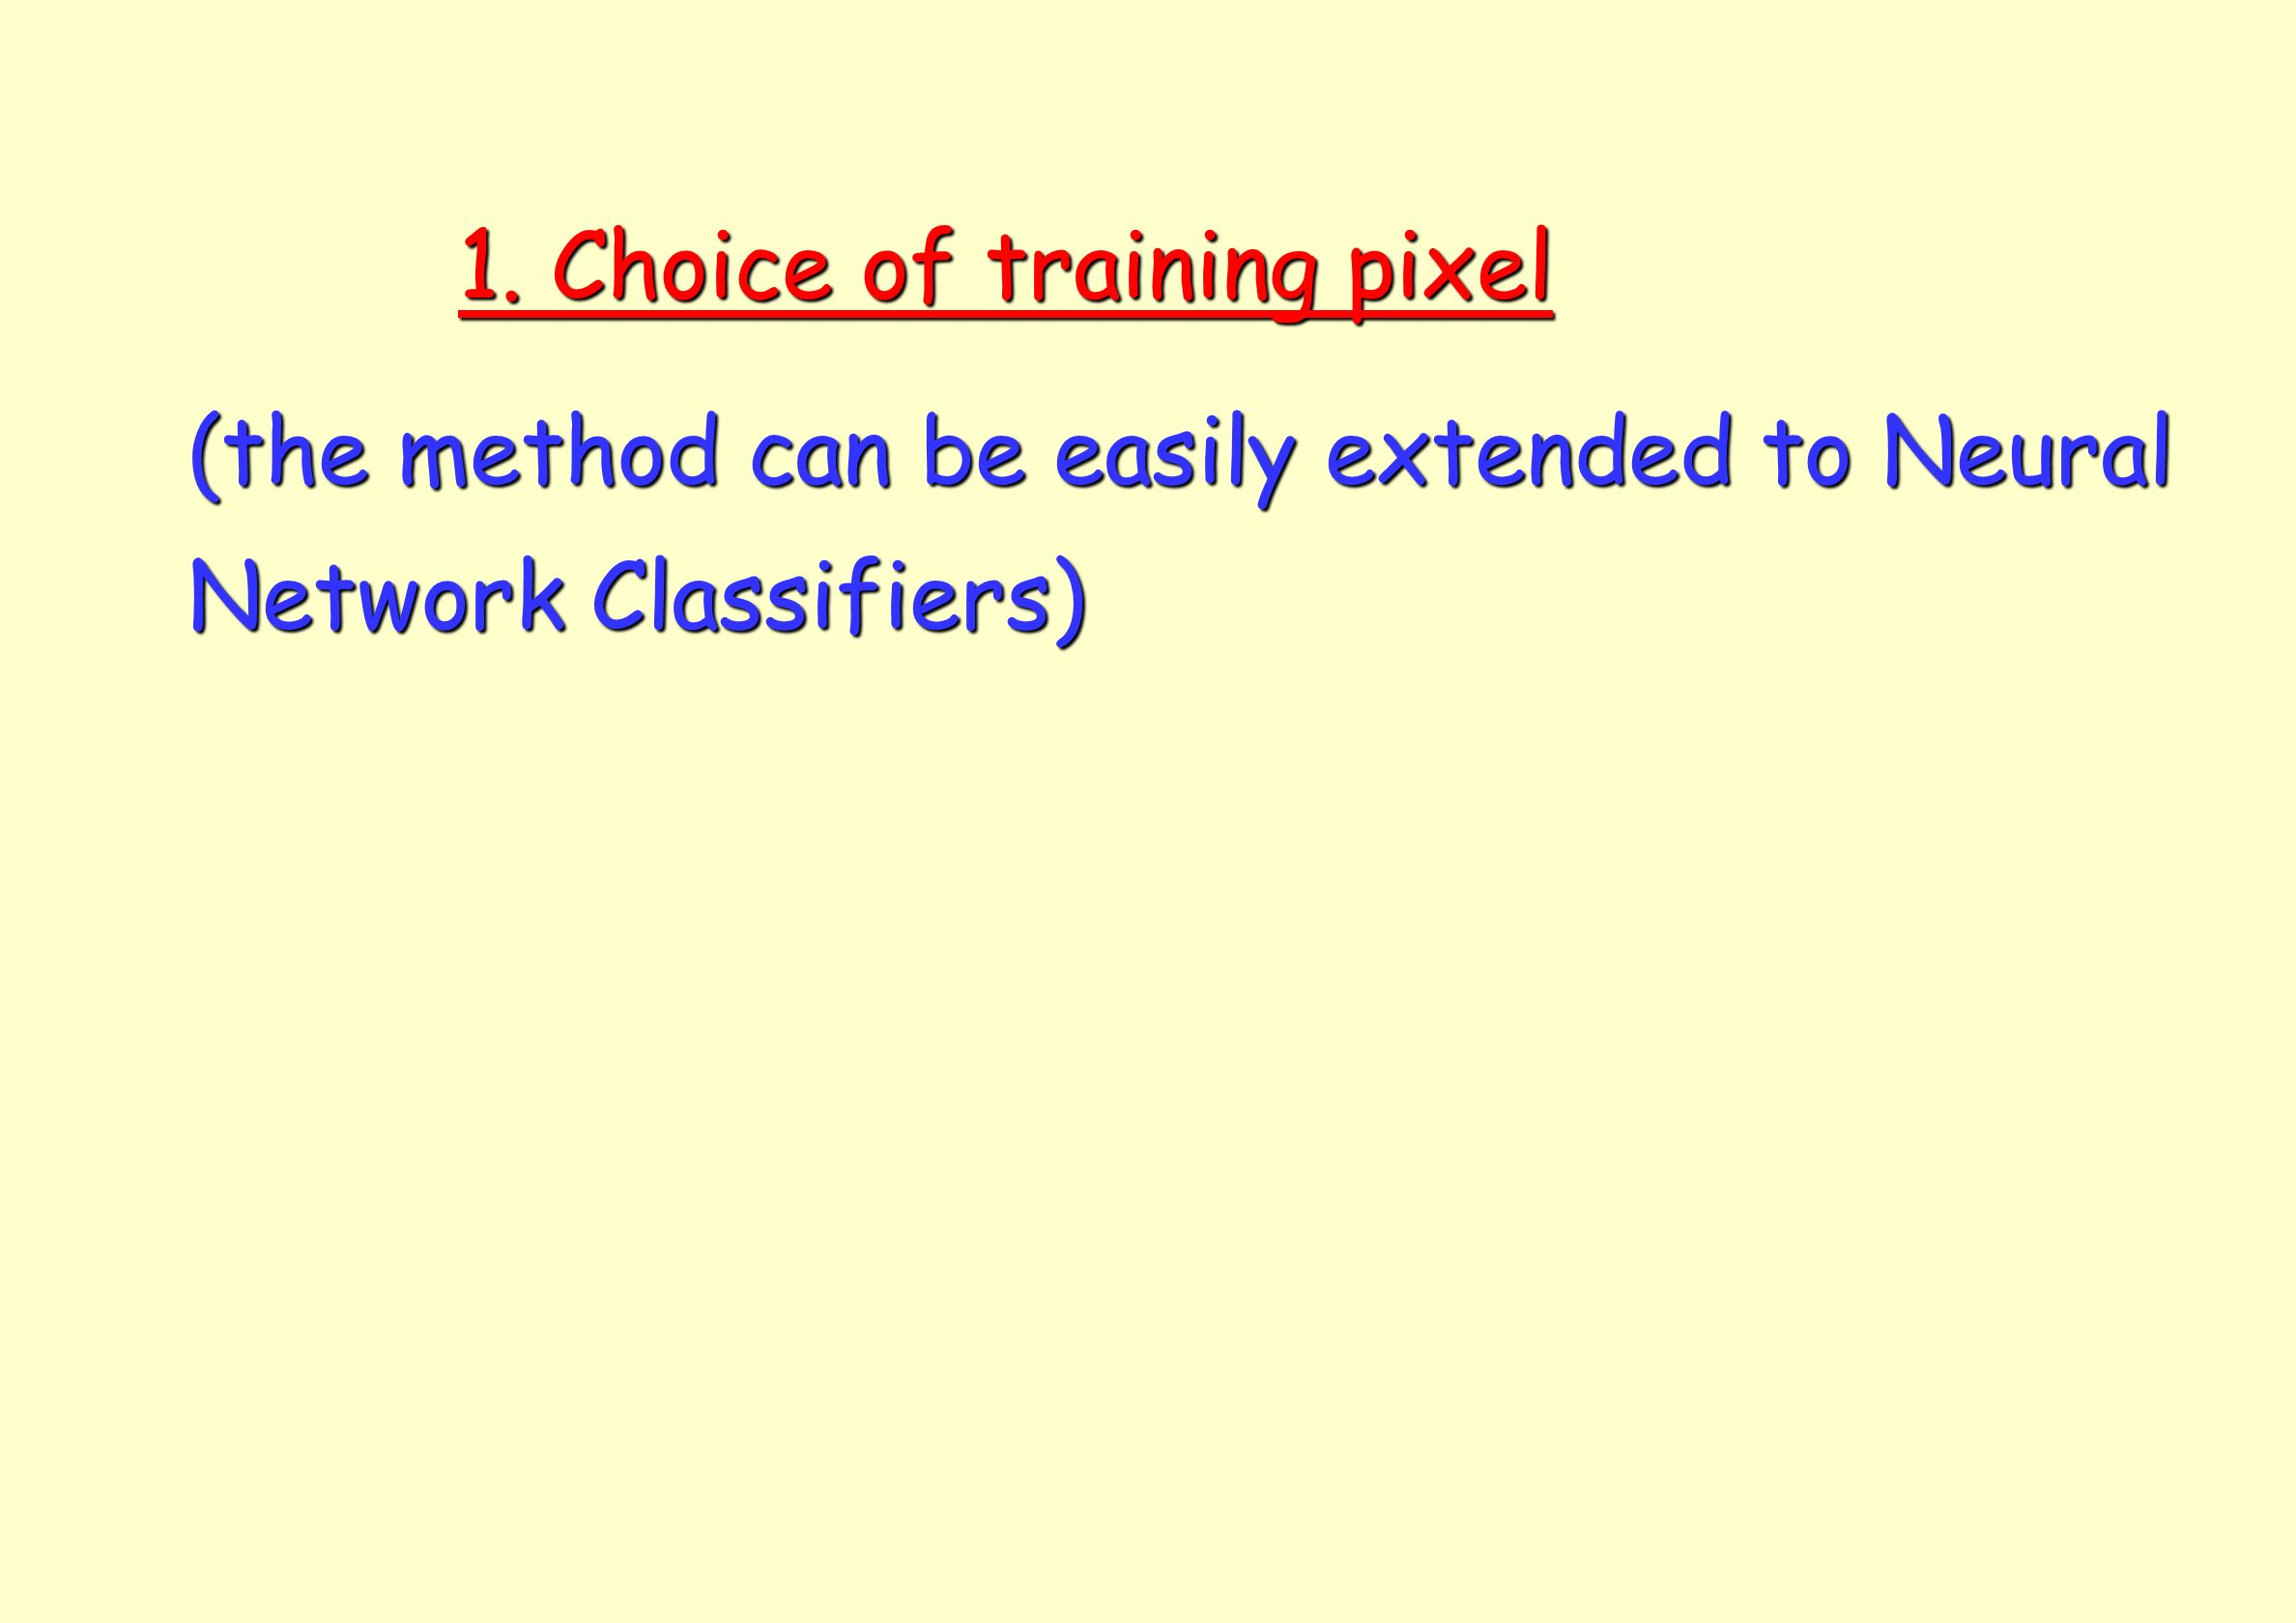 1. Choice of training pixel